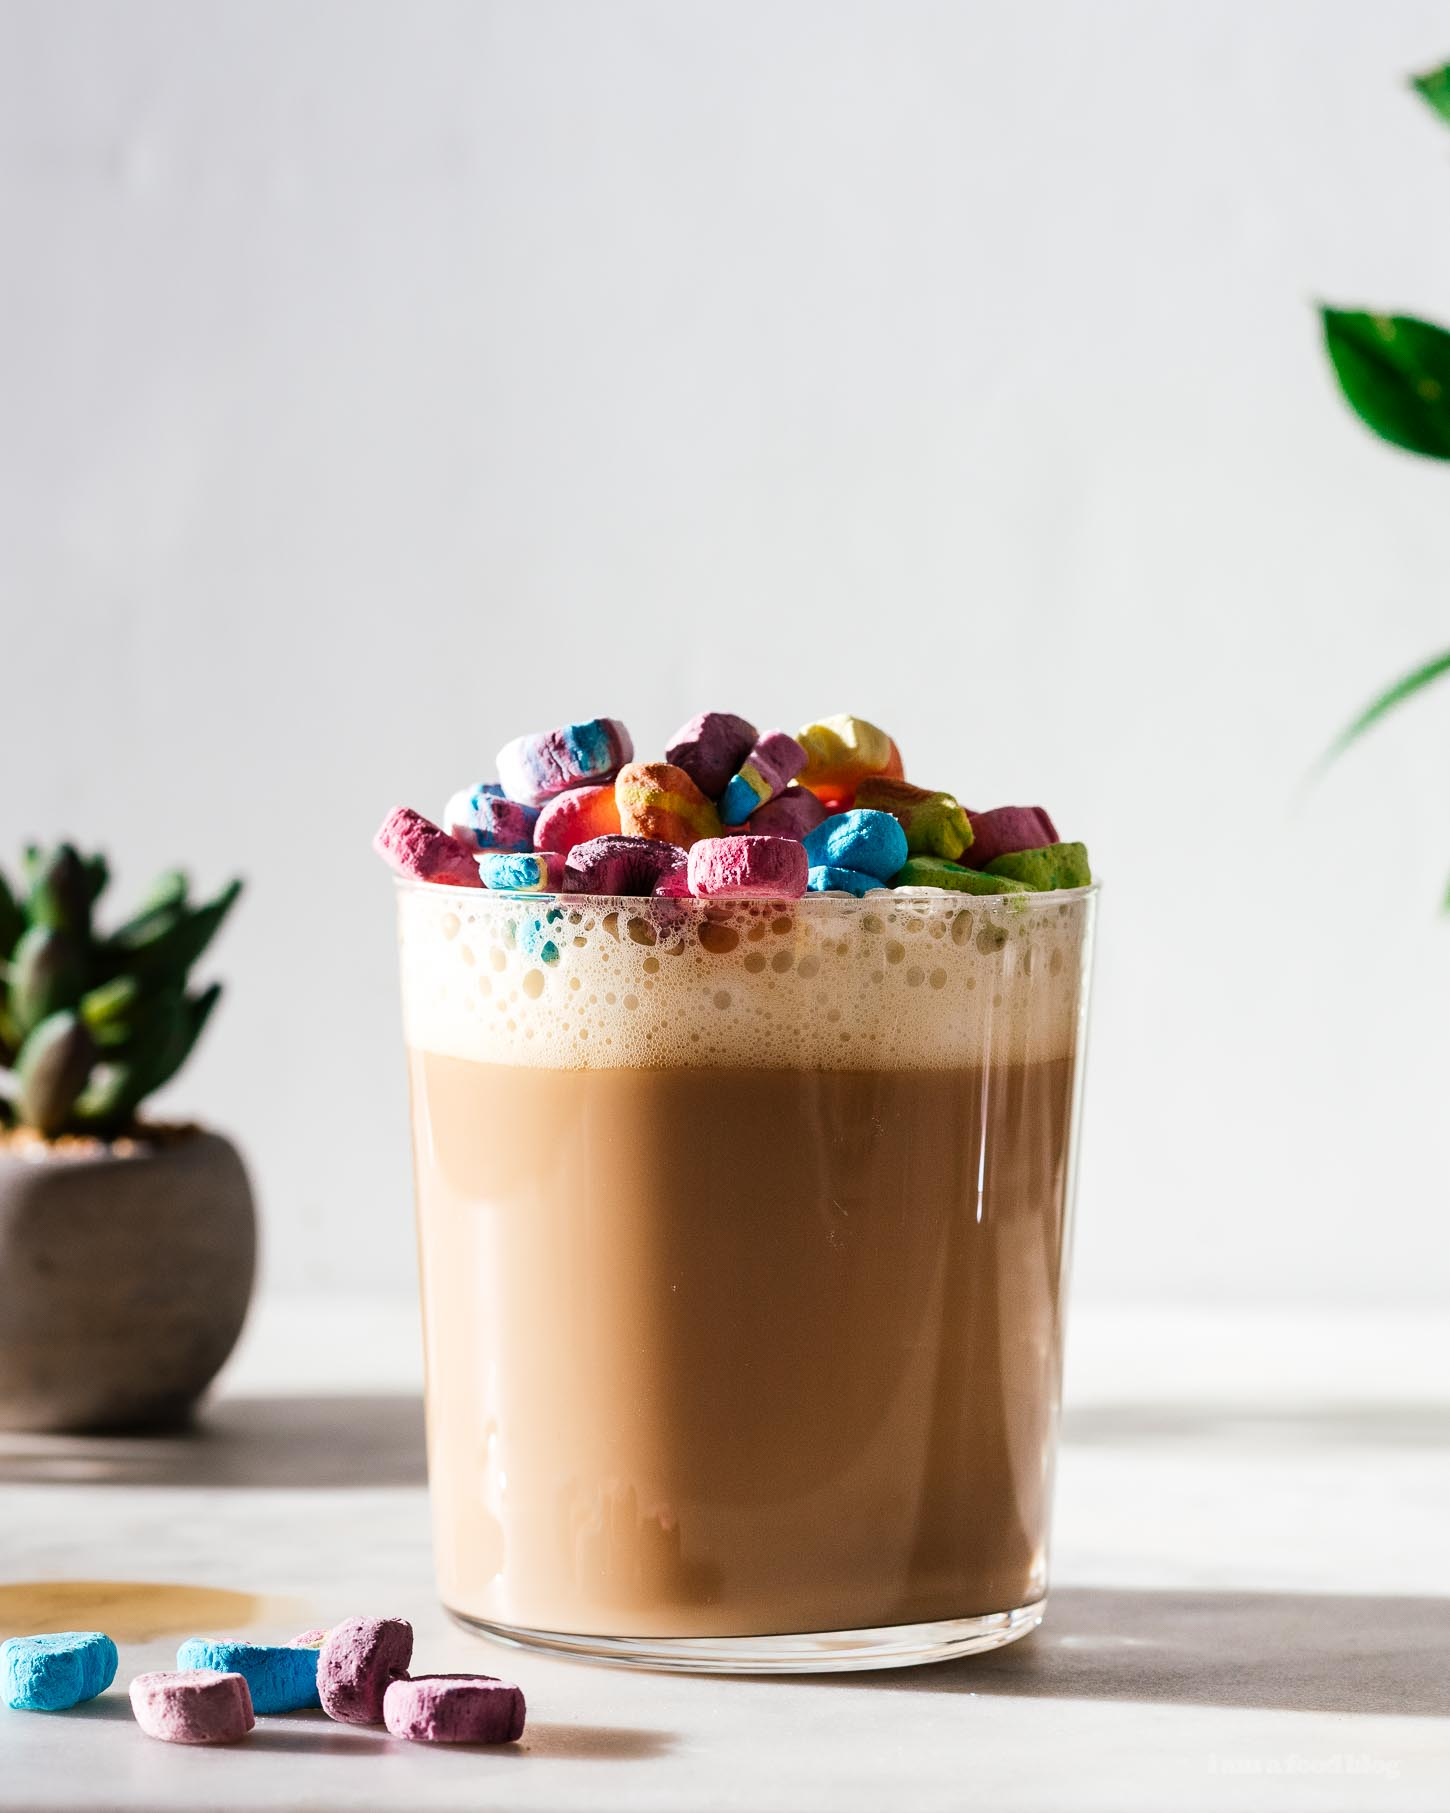 How to Make a Lucky Charms Cereal Milk Latte | www.iamafoodblog.com